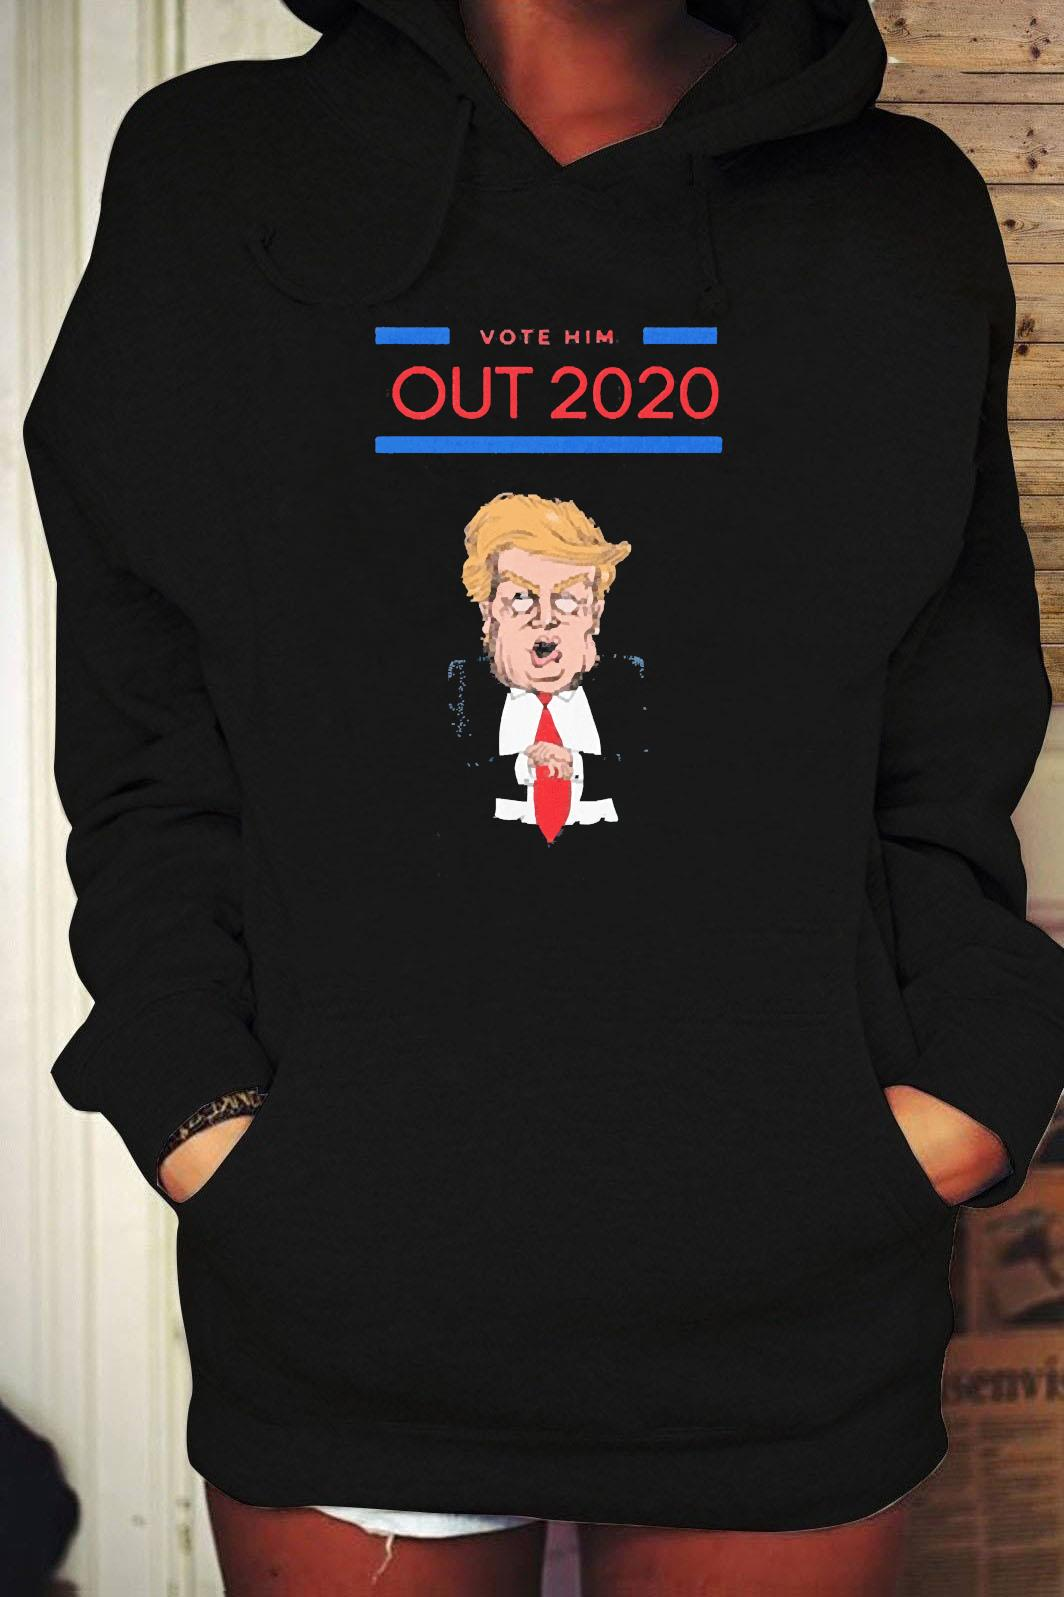 Vote Him Out 2020 Donald Trump Shirt Hoodie